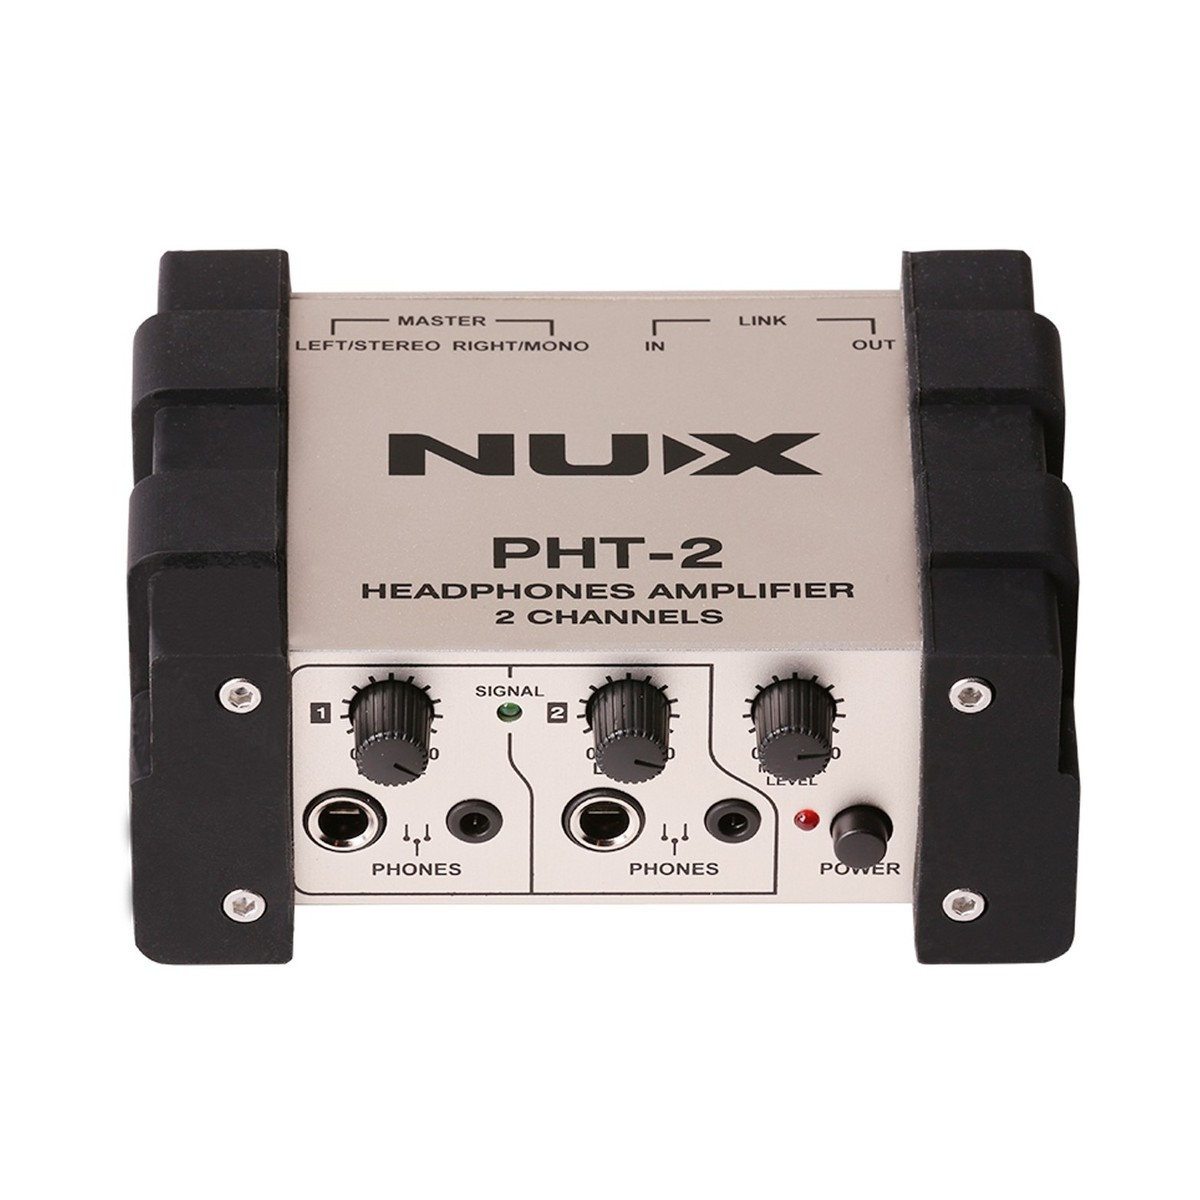 Nux Pht 2 Headphone Amplifier At Gear4music Stereo Volume Control In Electrical Engineering Amp